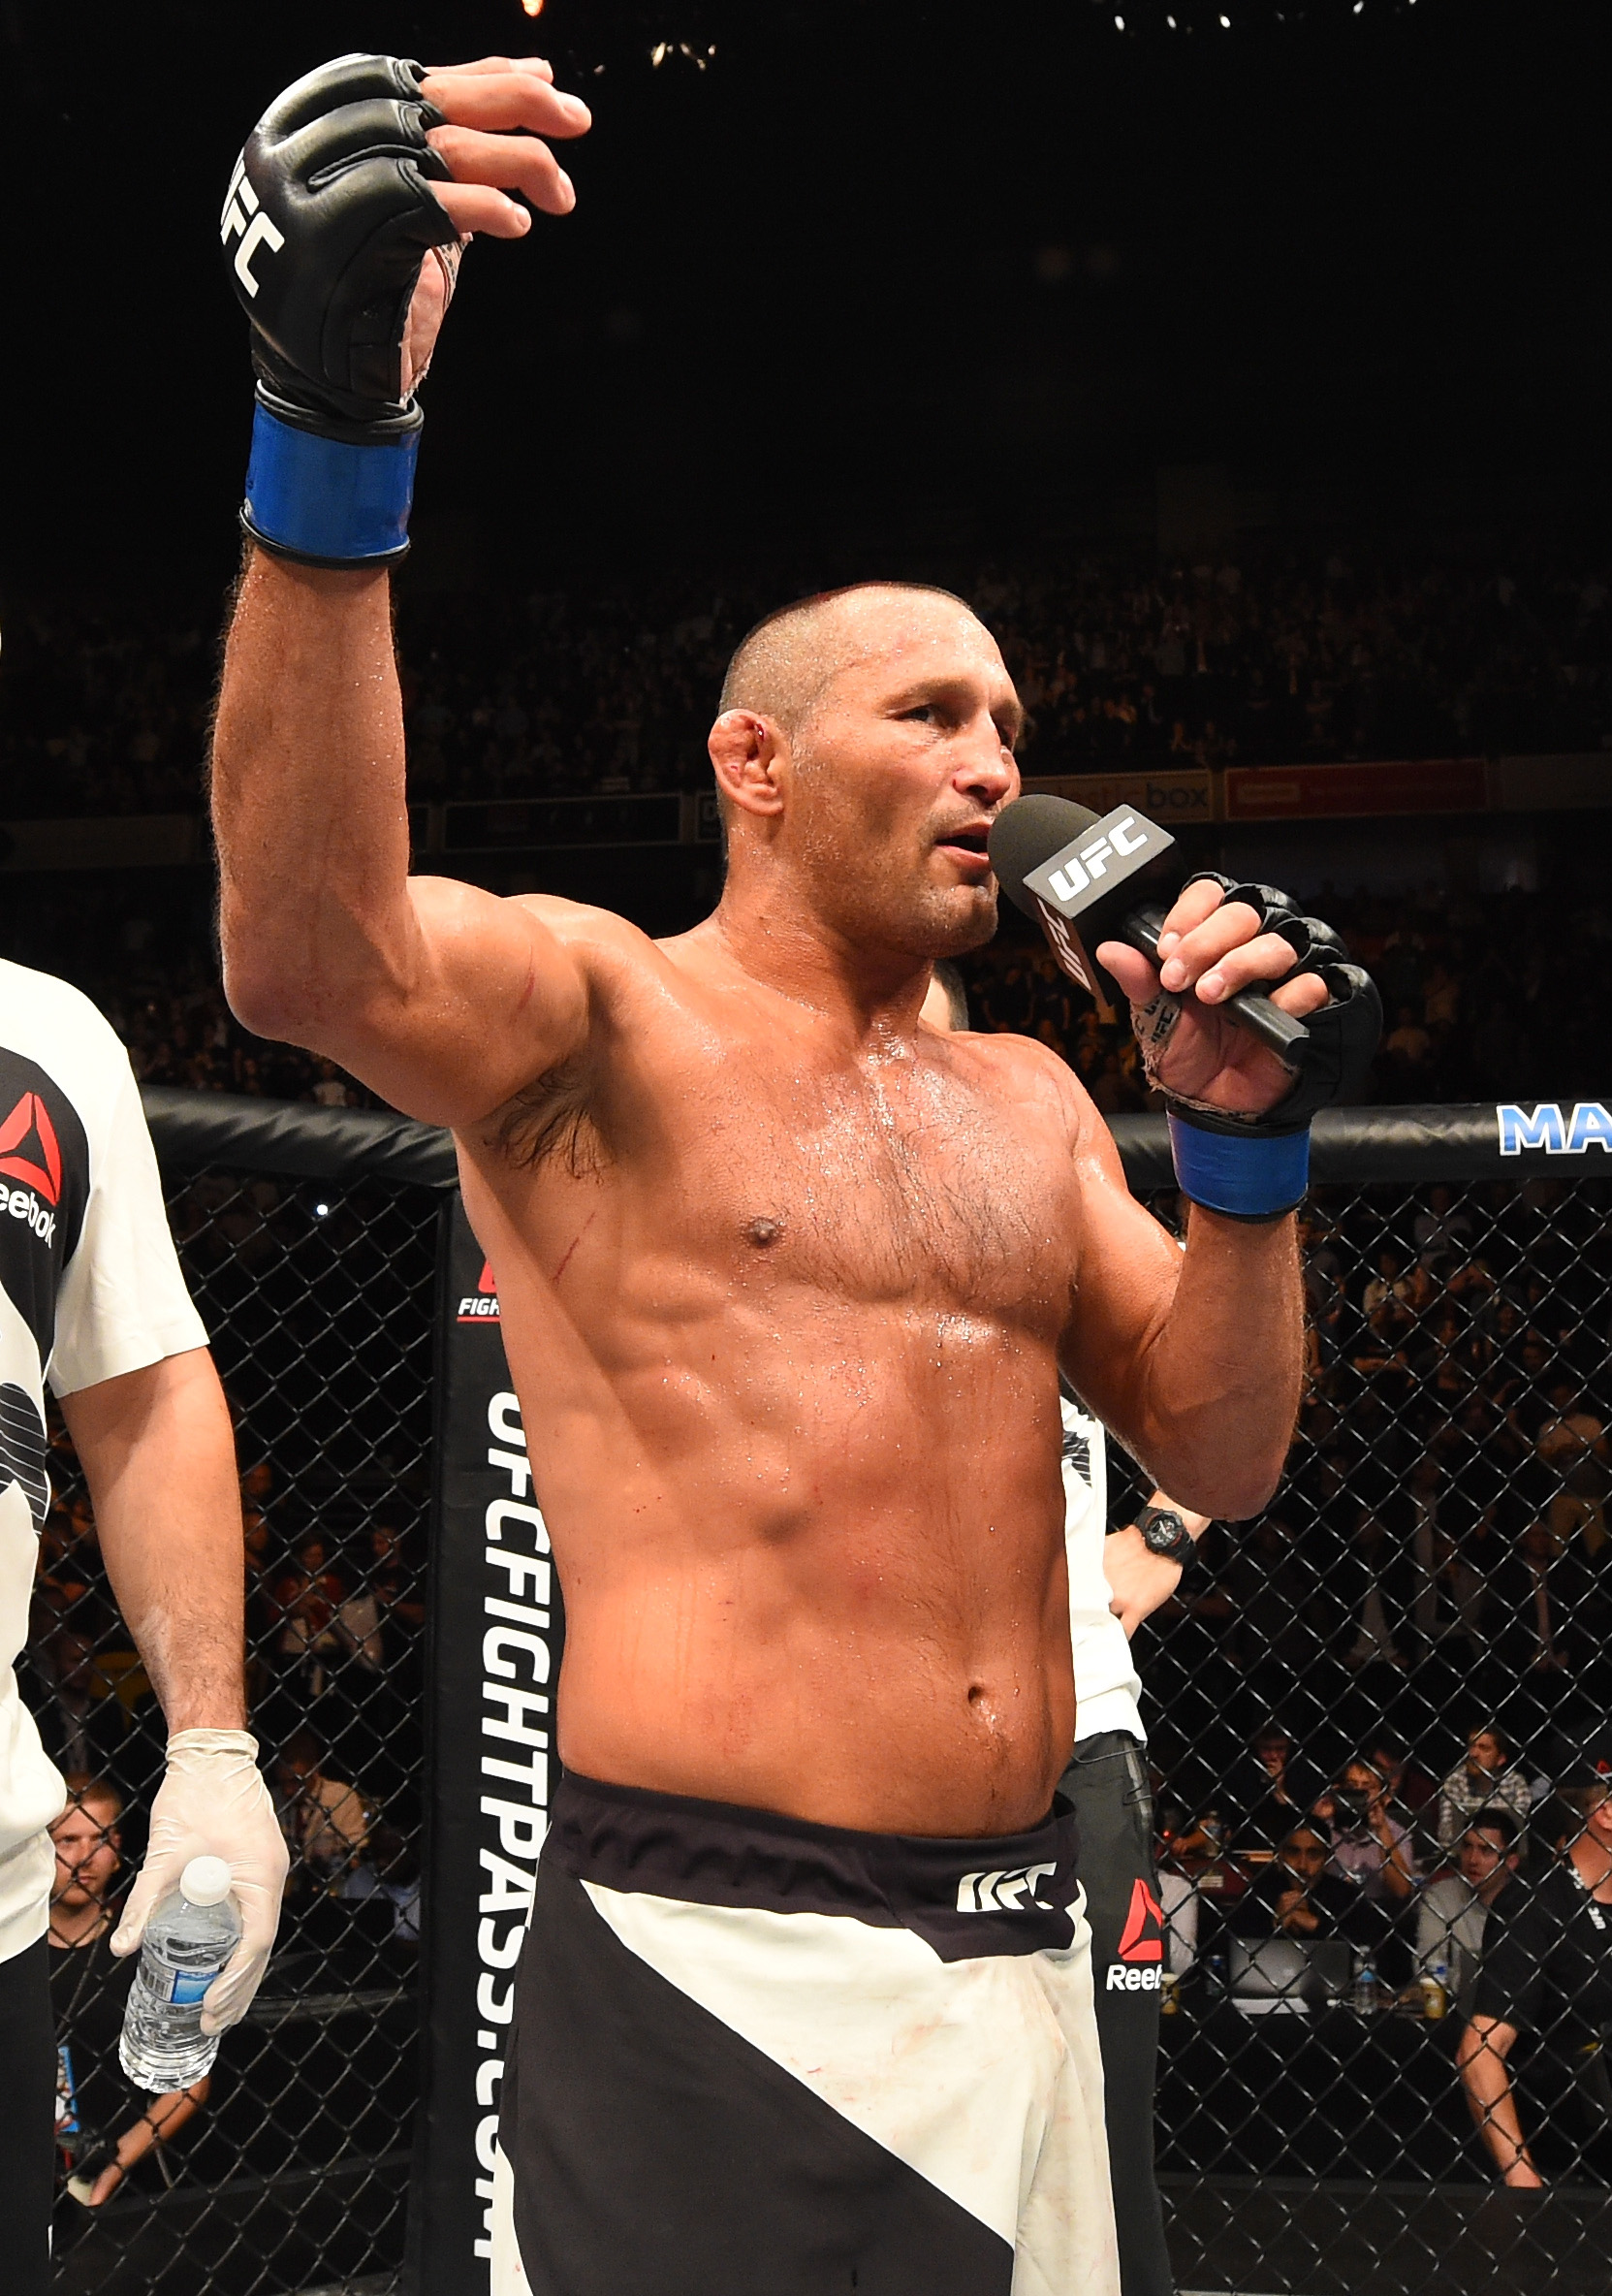 Dan Henderson is so pissed off about Michael Bisping's UFC 204 victory he is ready for third fight